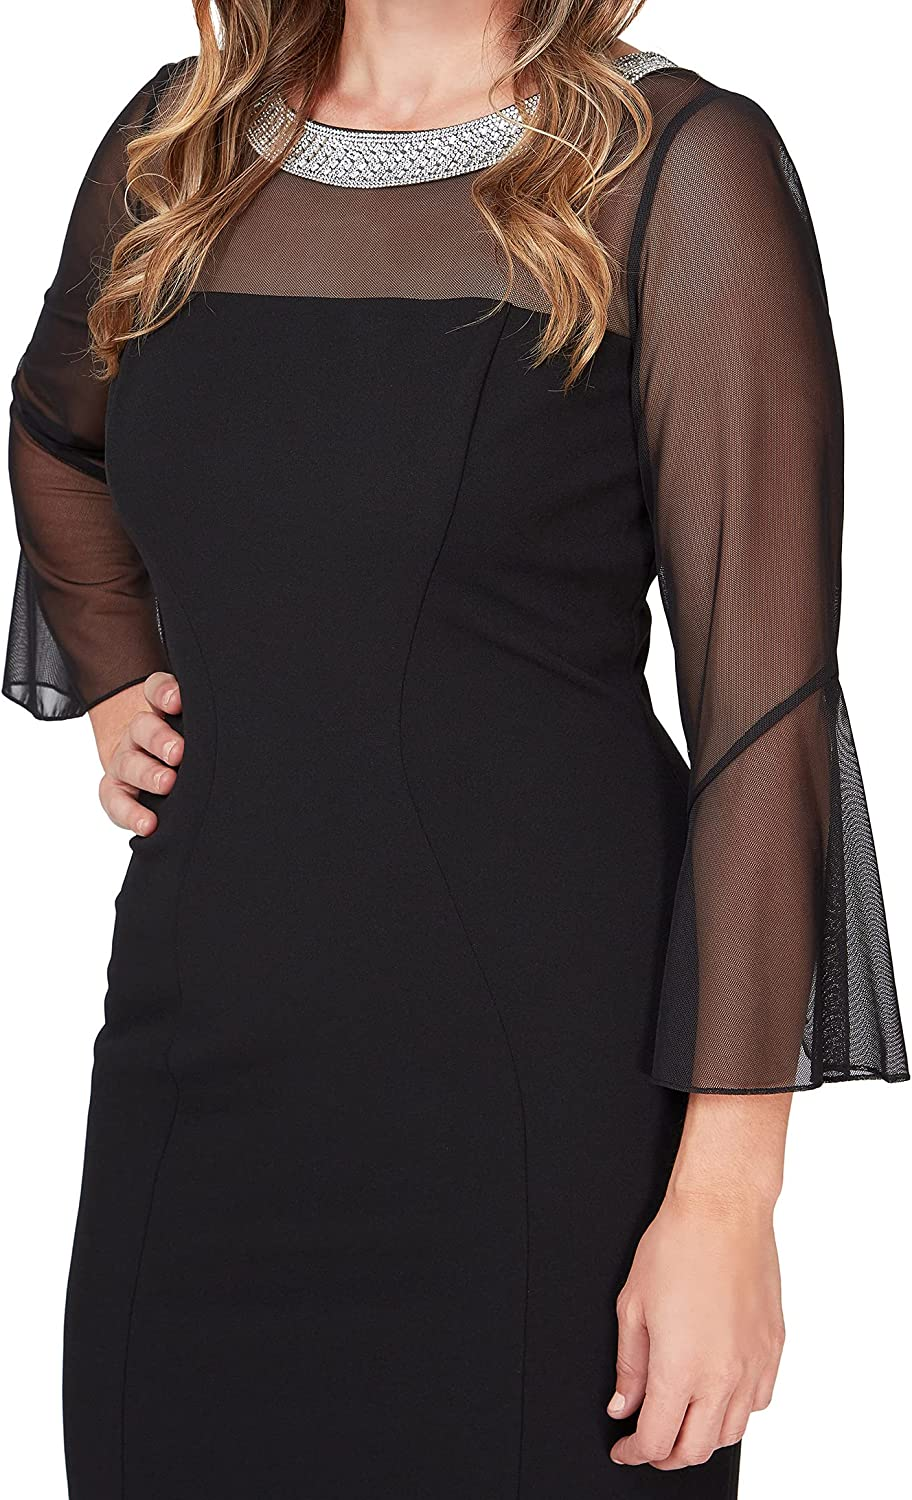 Alex Evenings Women's Plus Size Short Shift Dress with Embellished Illusion Detail